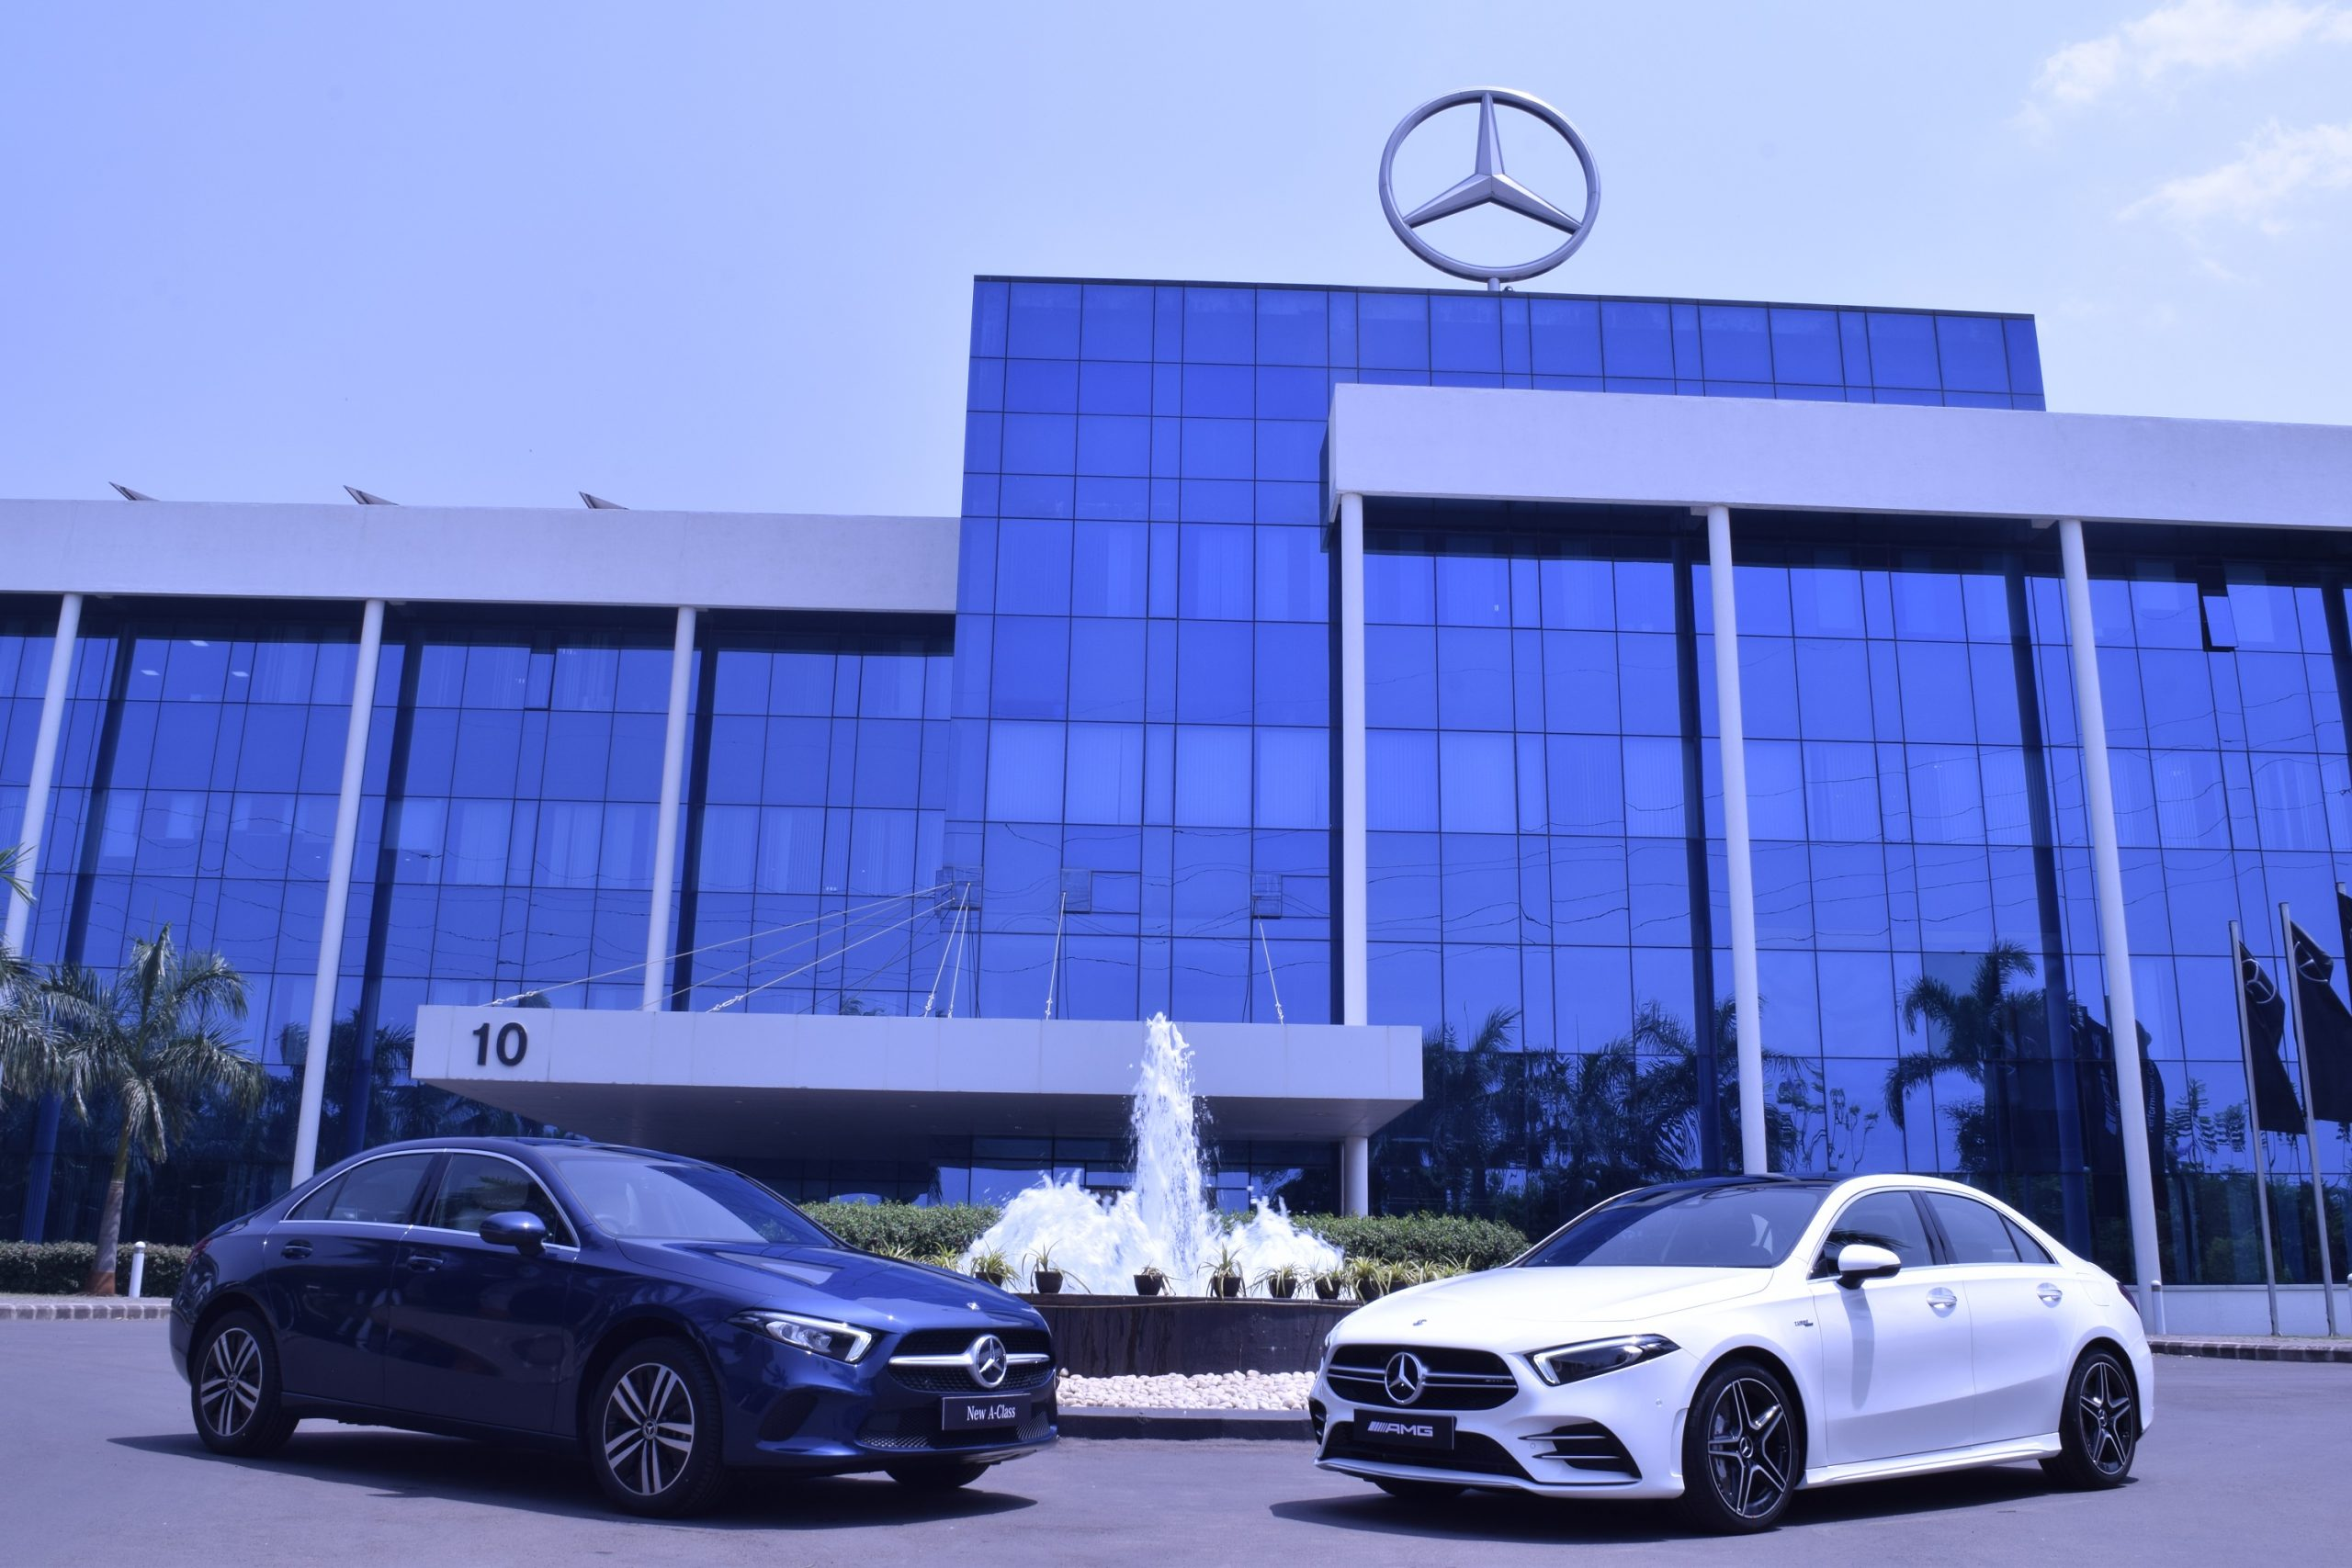 Mercedes-Benz launches two new cars—A-Class Limousine & AMG A 35 4MATIC